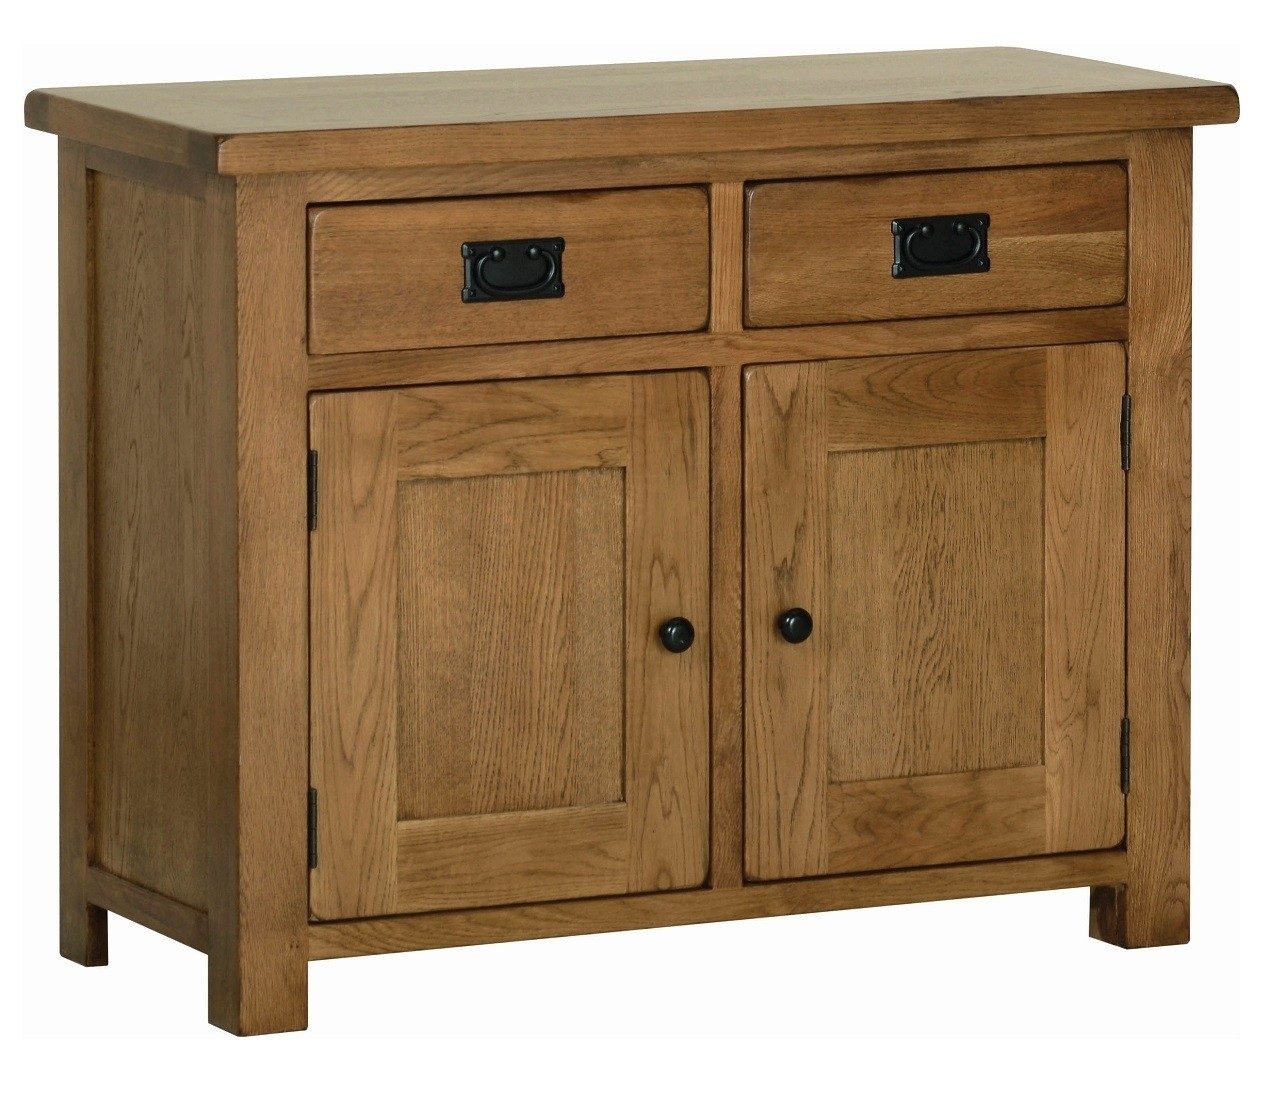 Edinburgh Rustic Oak 2 Door Sideboard | Oak Furniture Uk Regarding Natural Oak Wood 2 Door Sideboards (Photo 22 of 30)